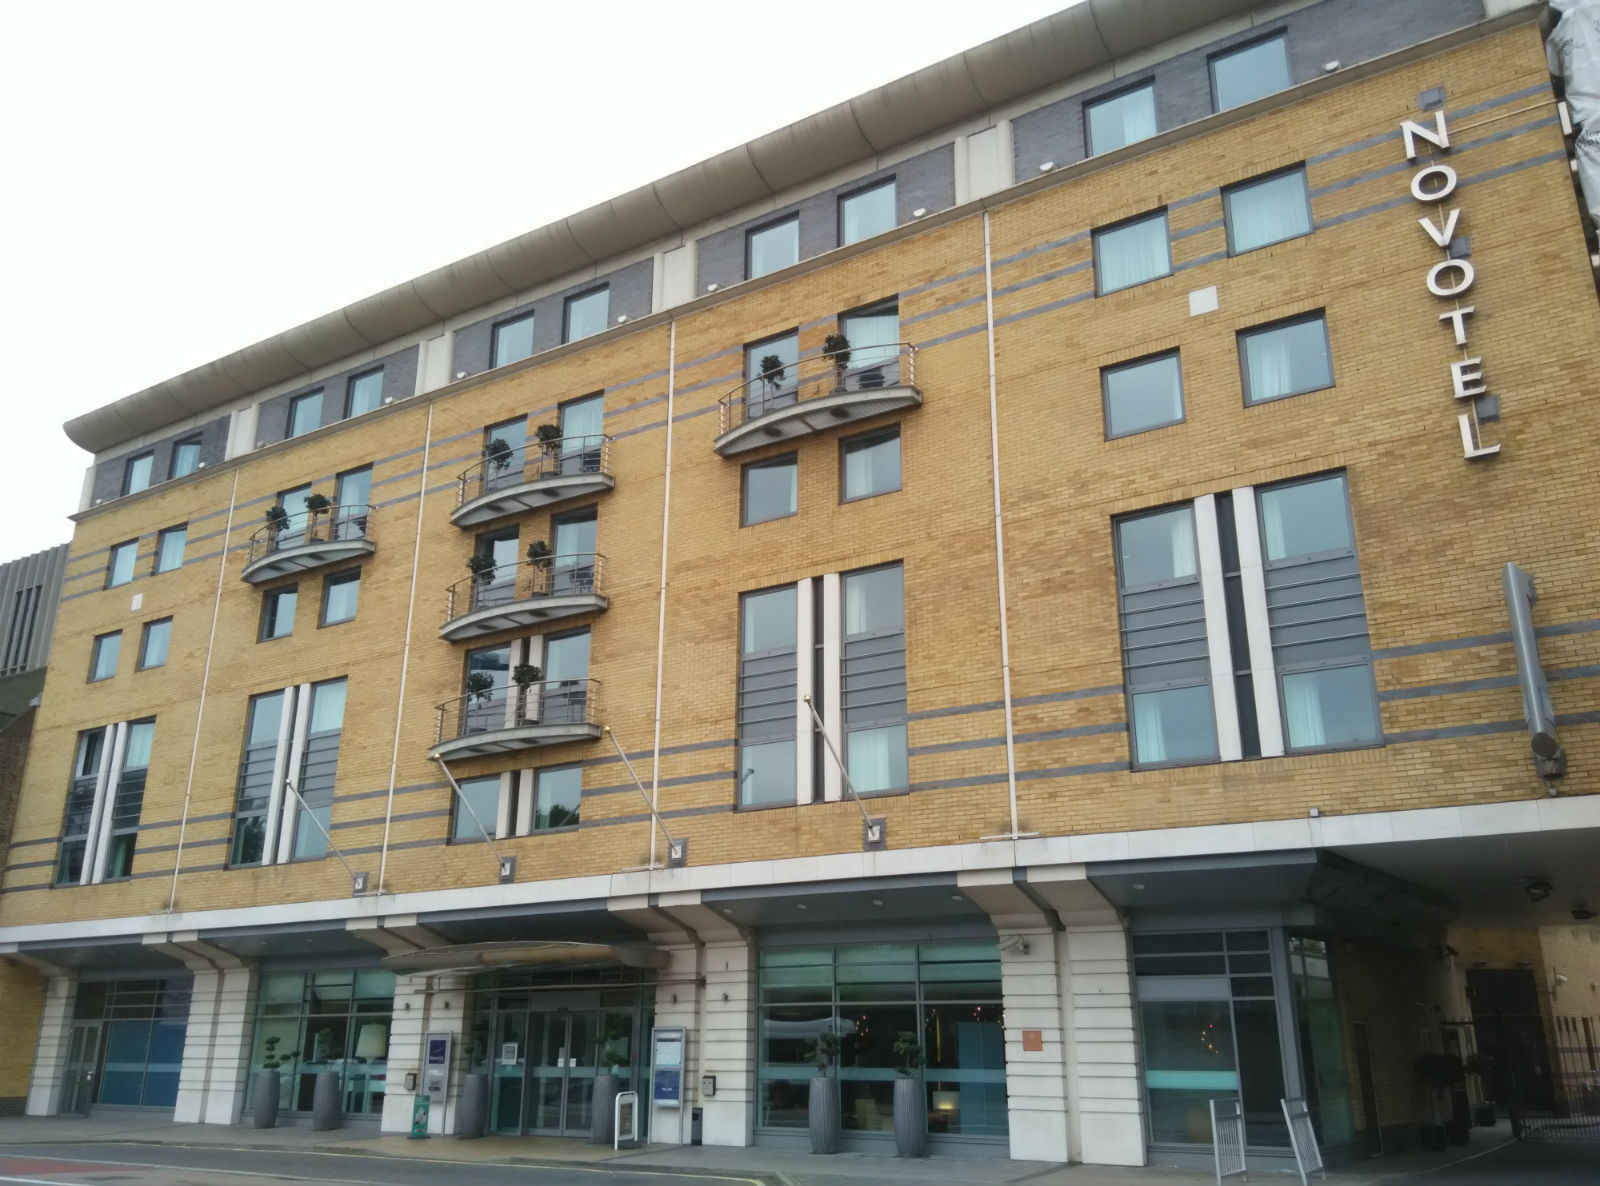 novotel-london-waterloo-exterior